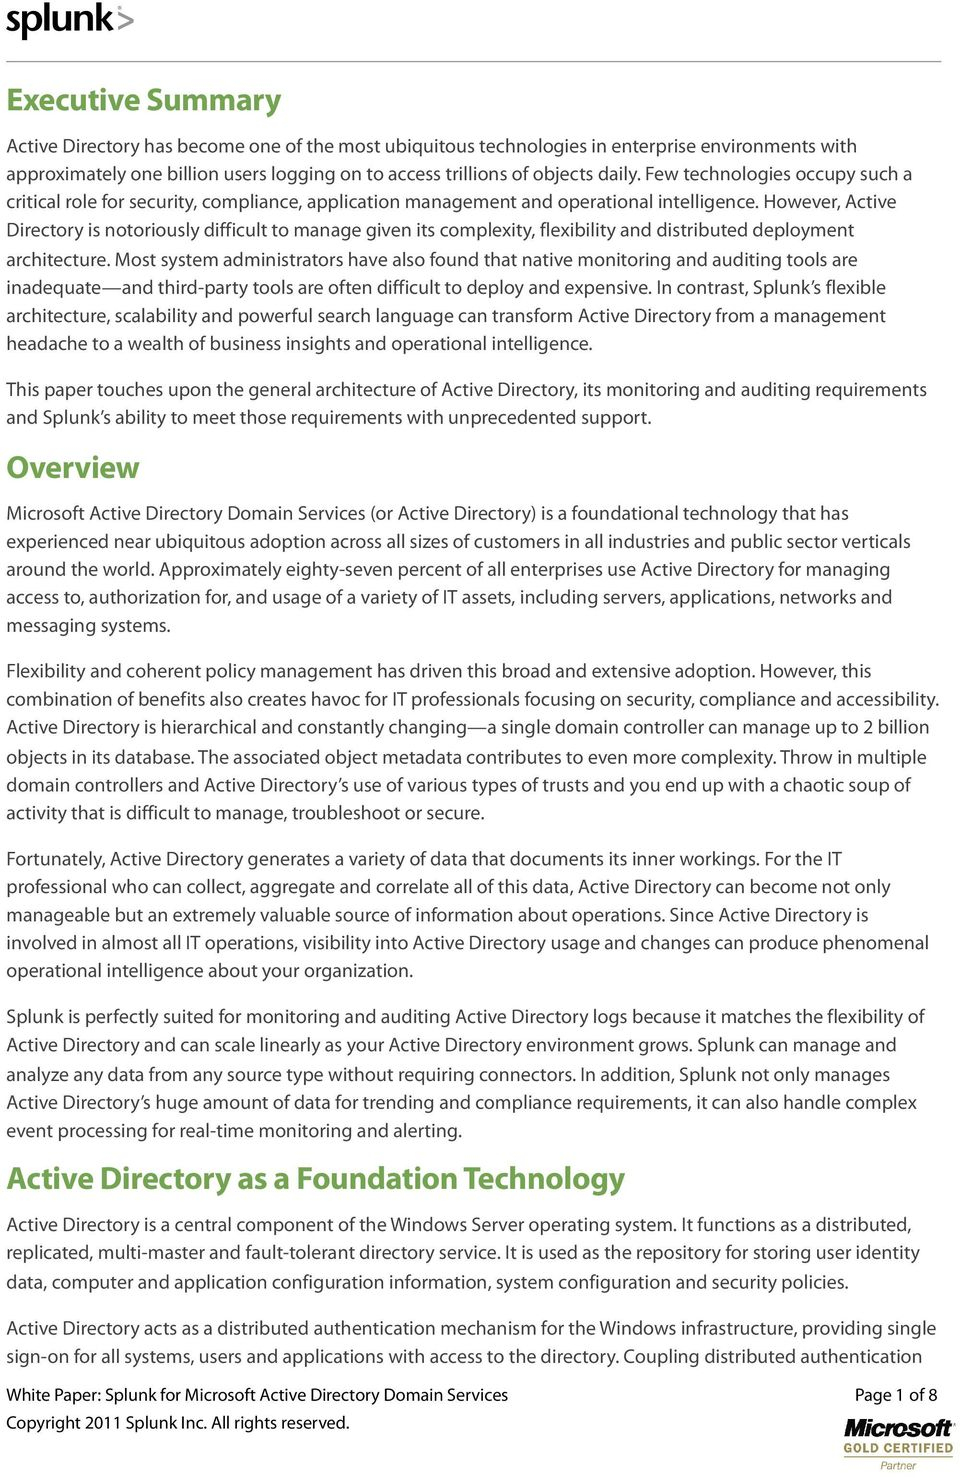 Splunk for Microsoft Active Directory Domain Services - PDF